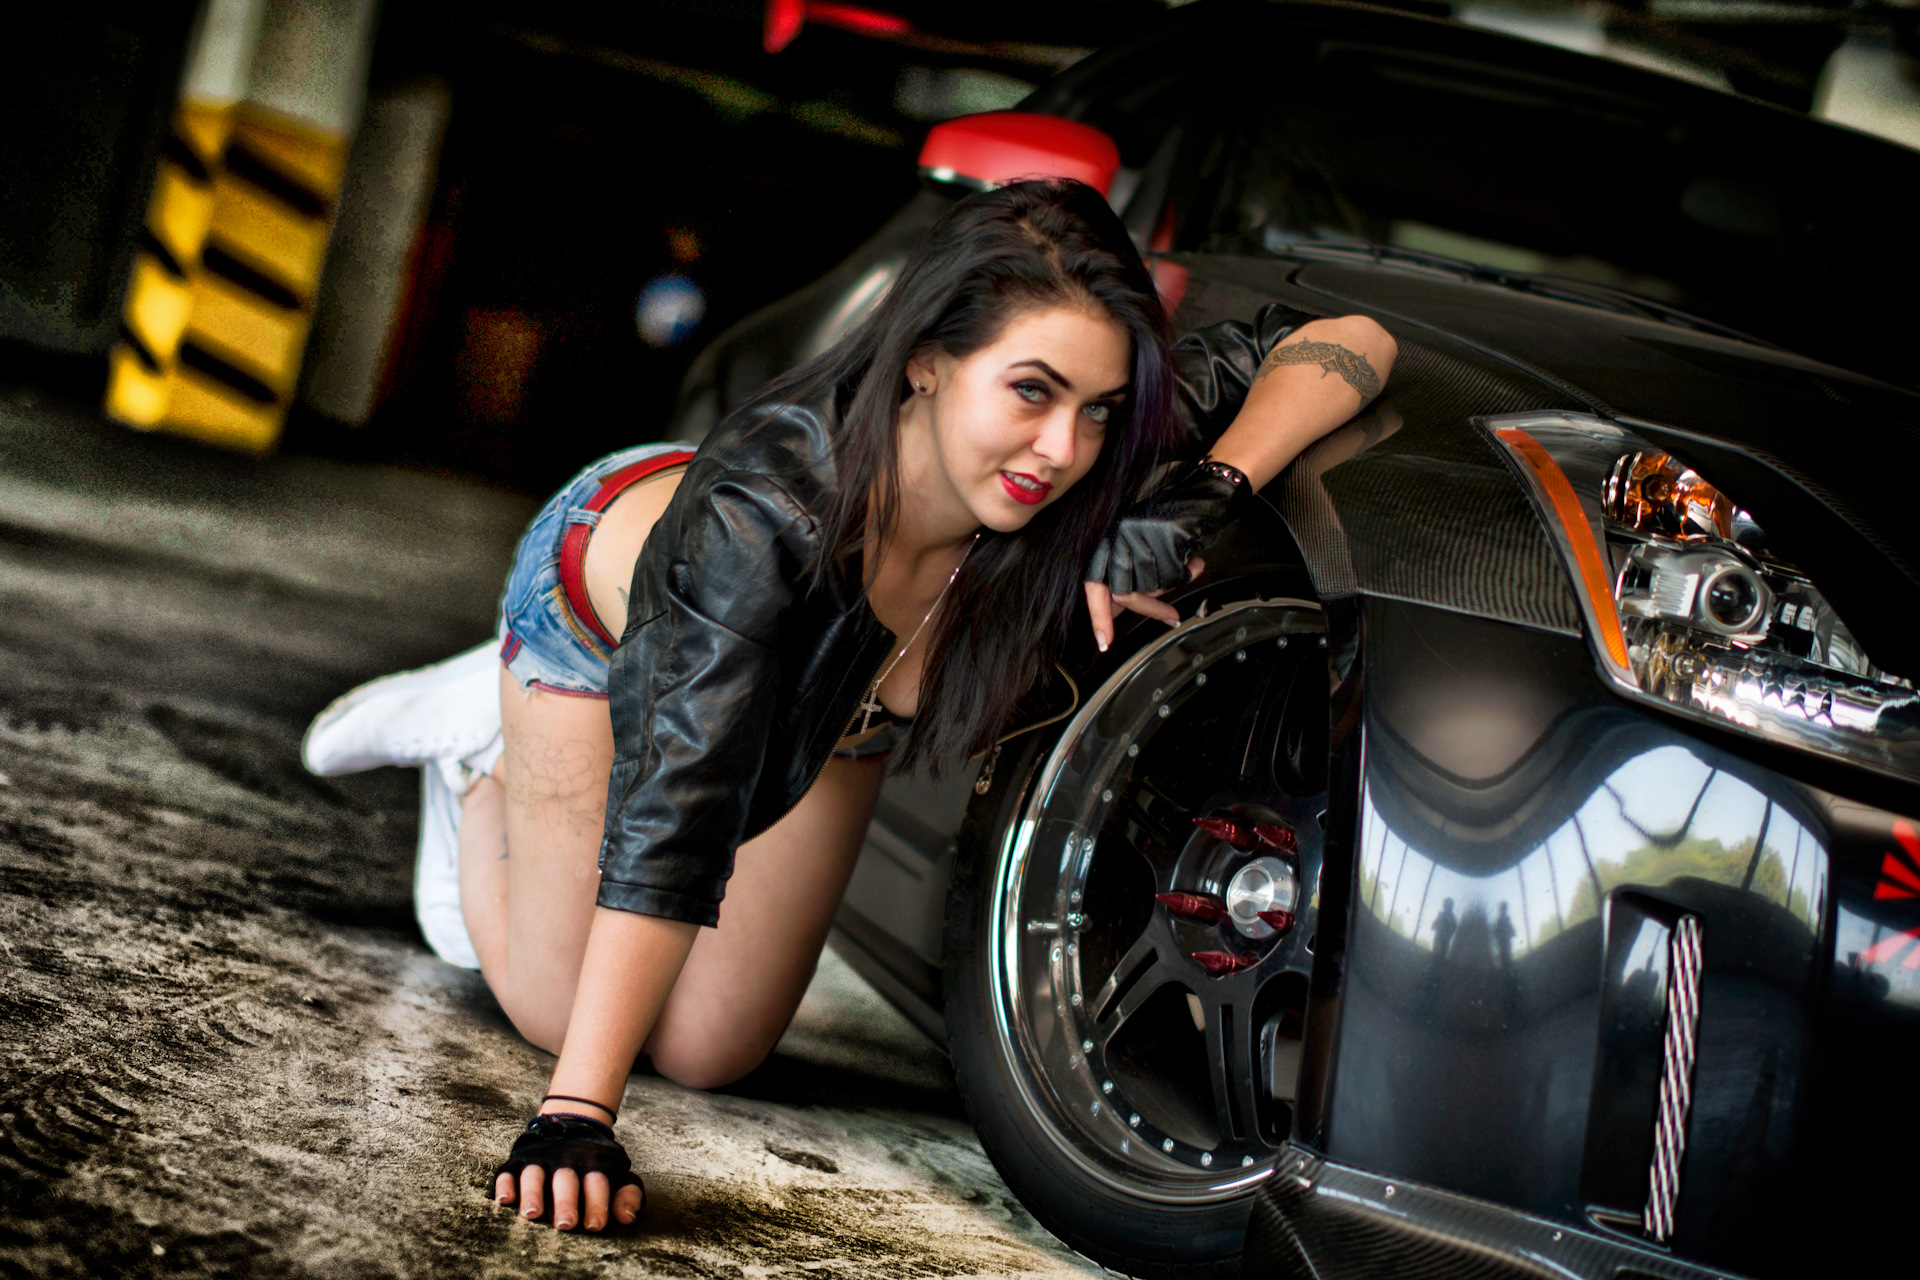 pics-of-girls-and-cars